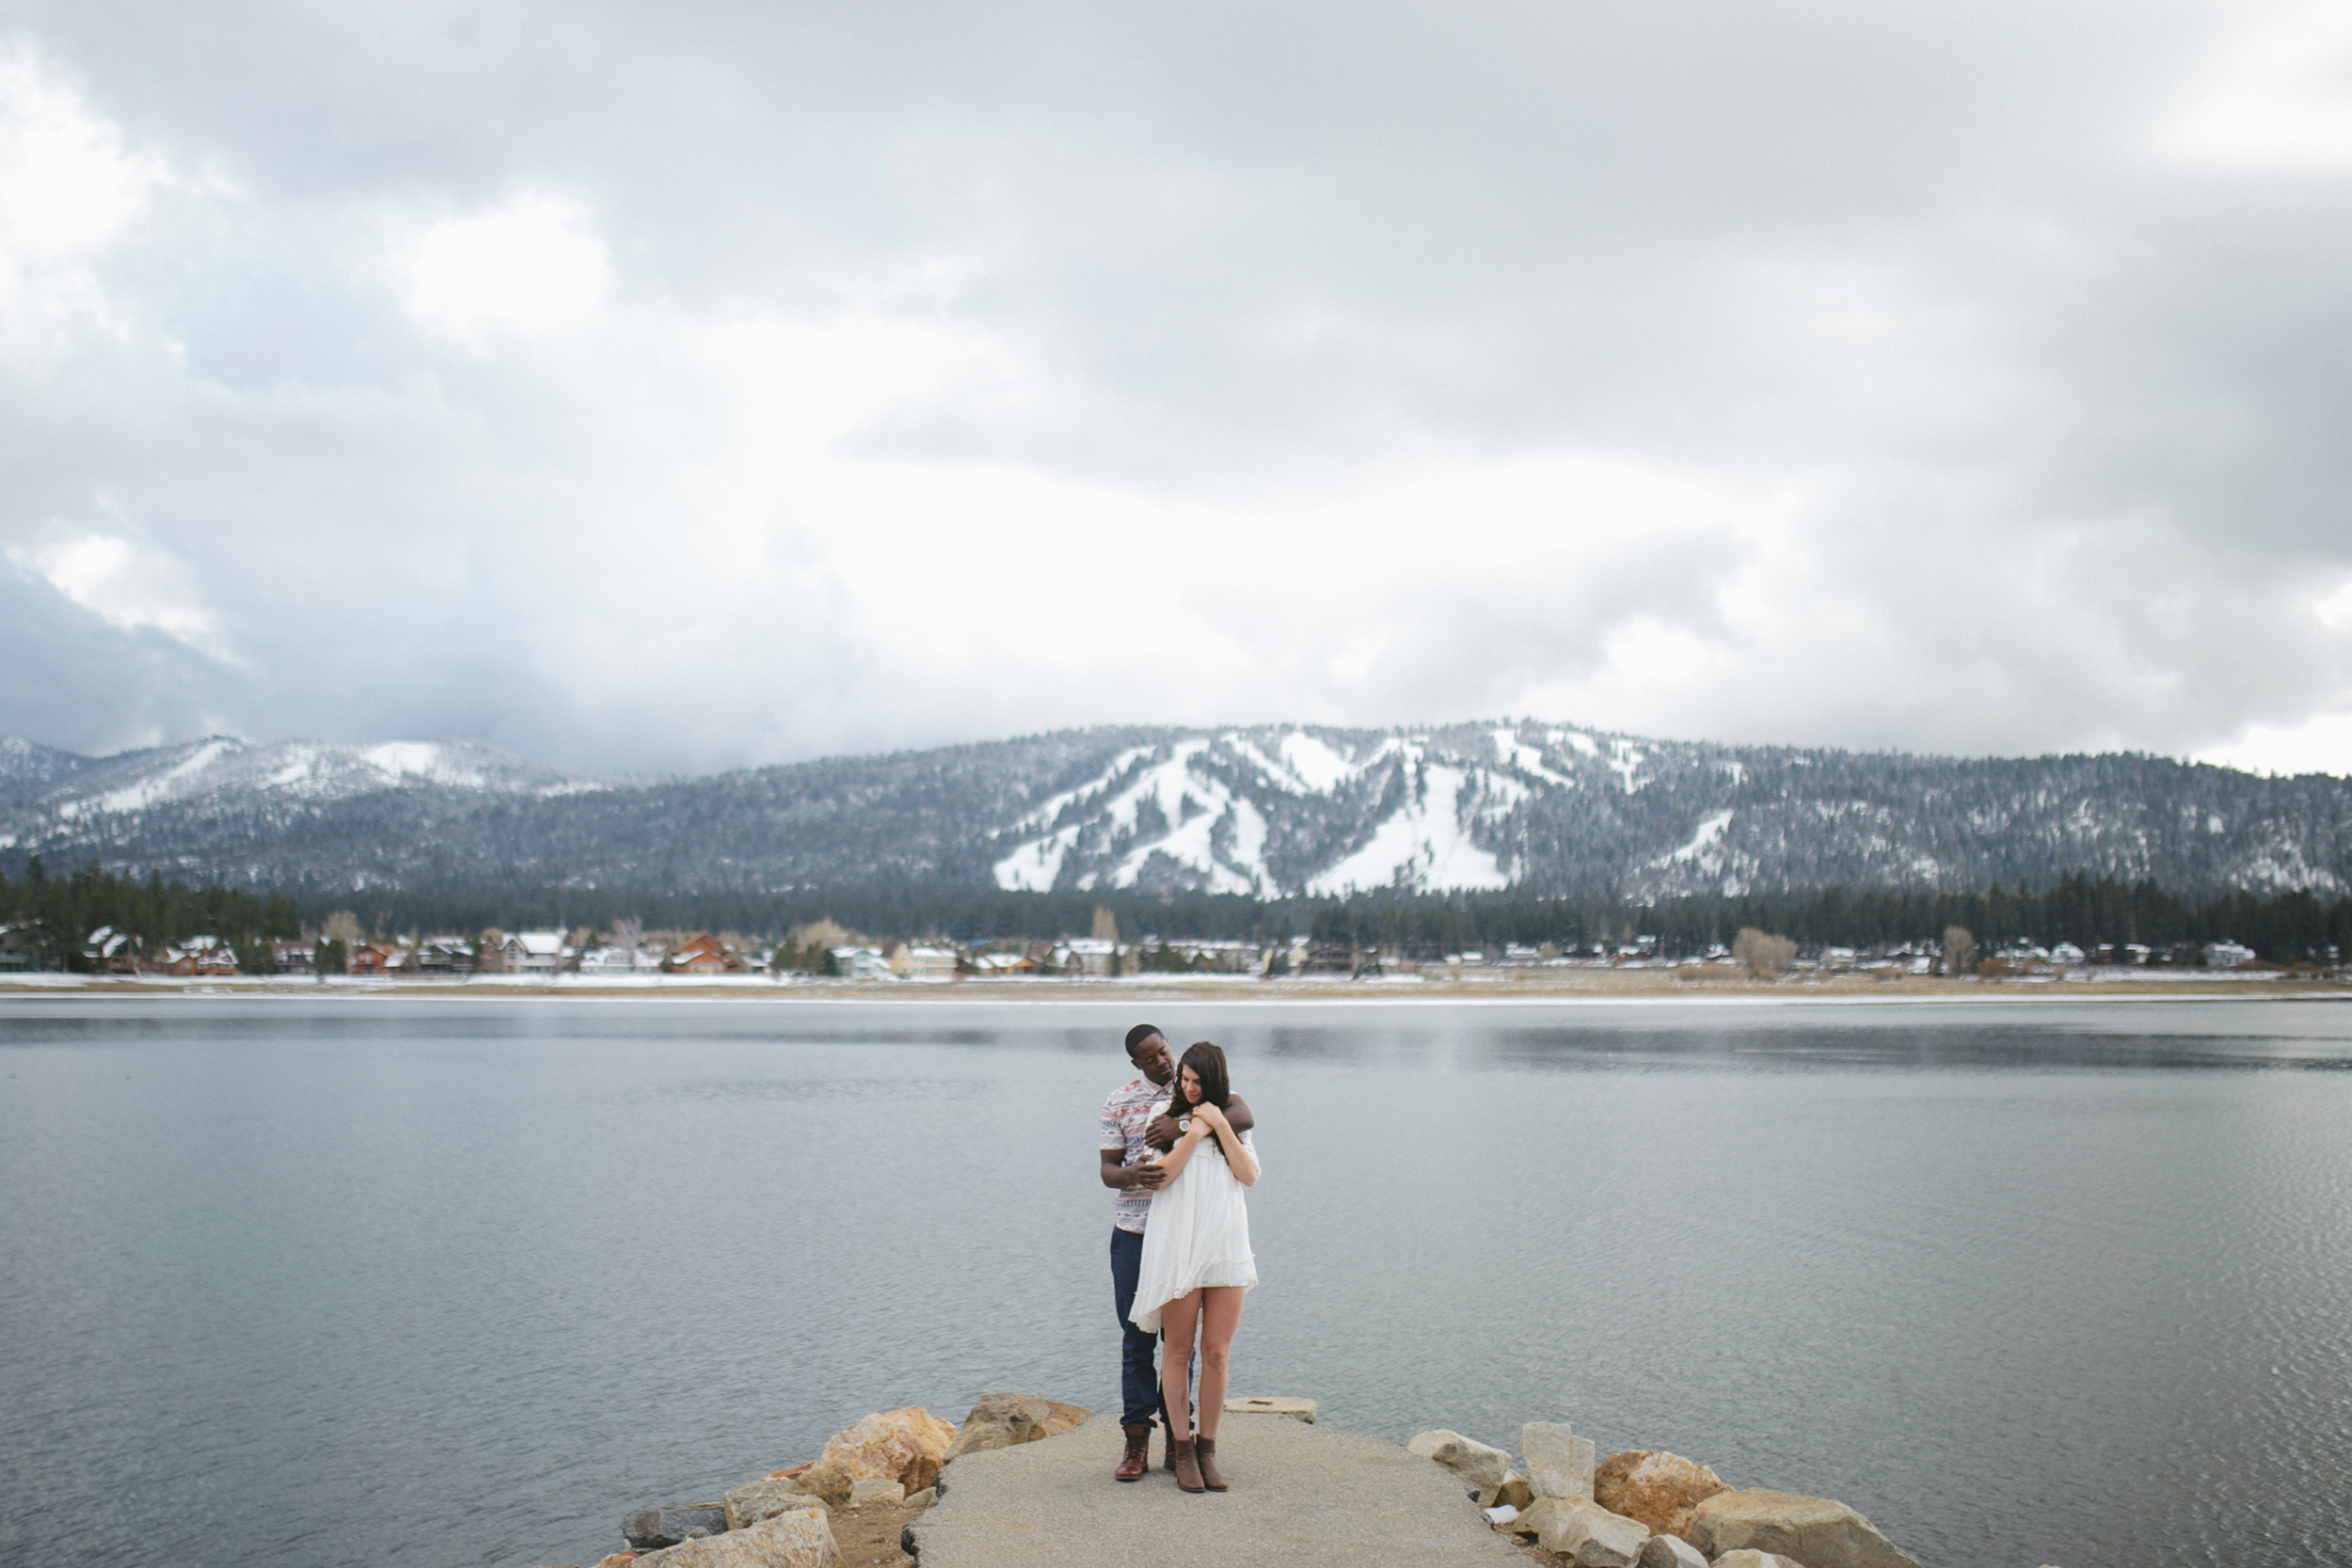 Colby-and-Jess-Adventure-Engagement-Photography-Big-Bear-California194.jpg